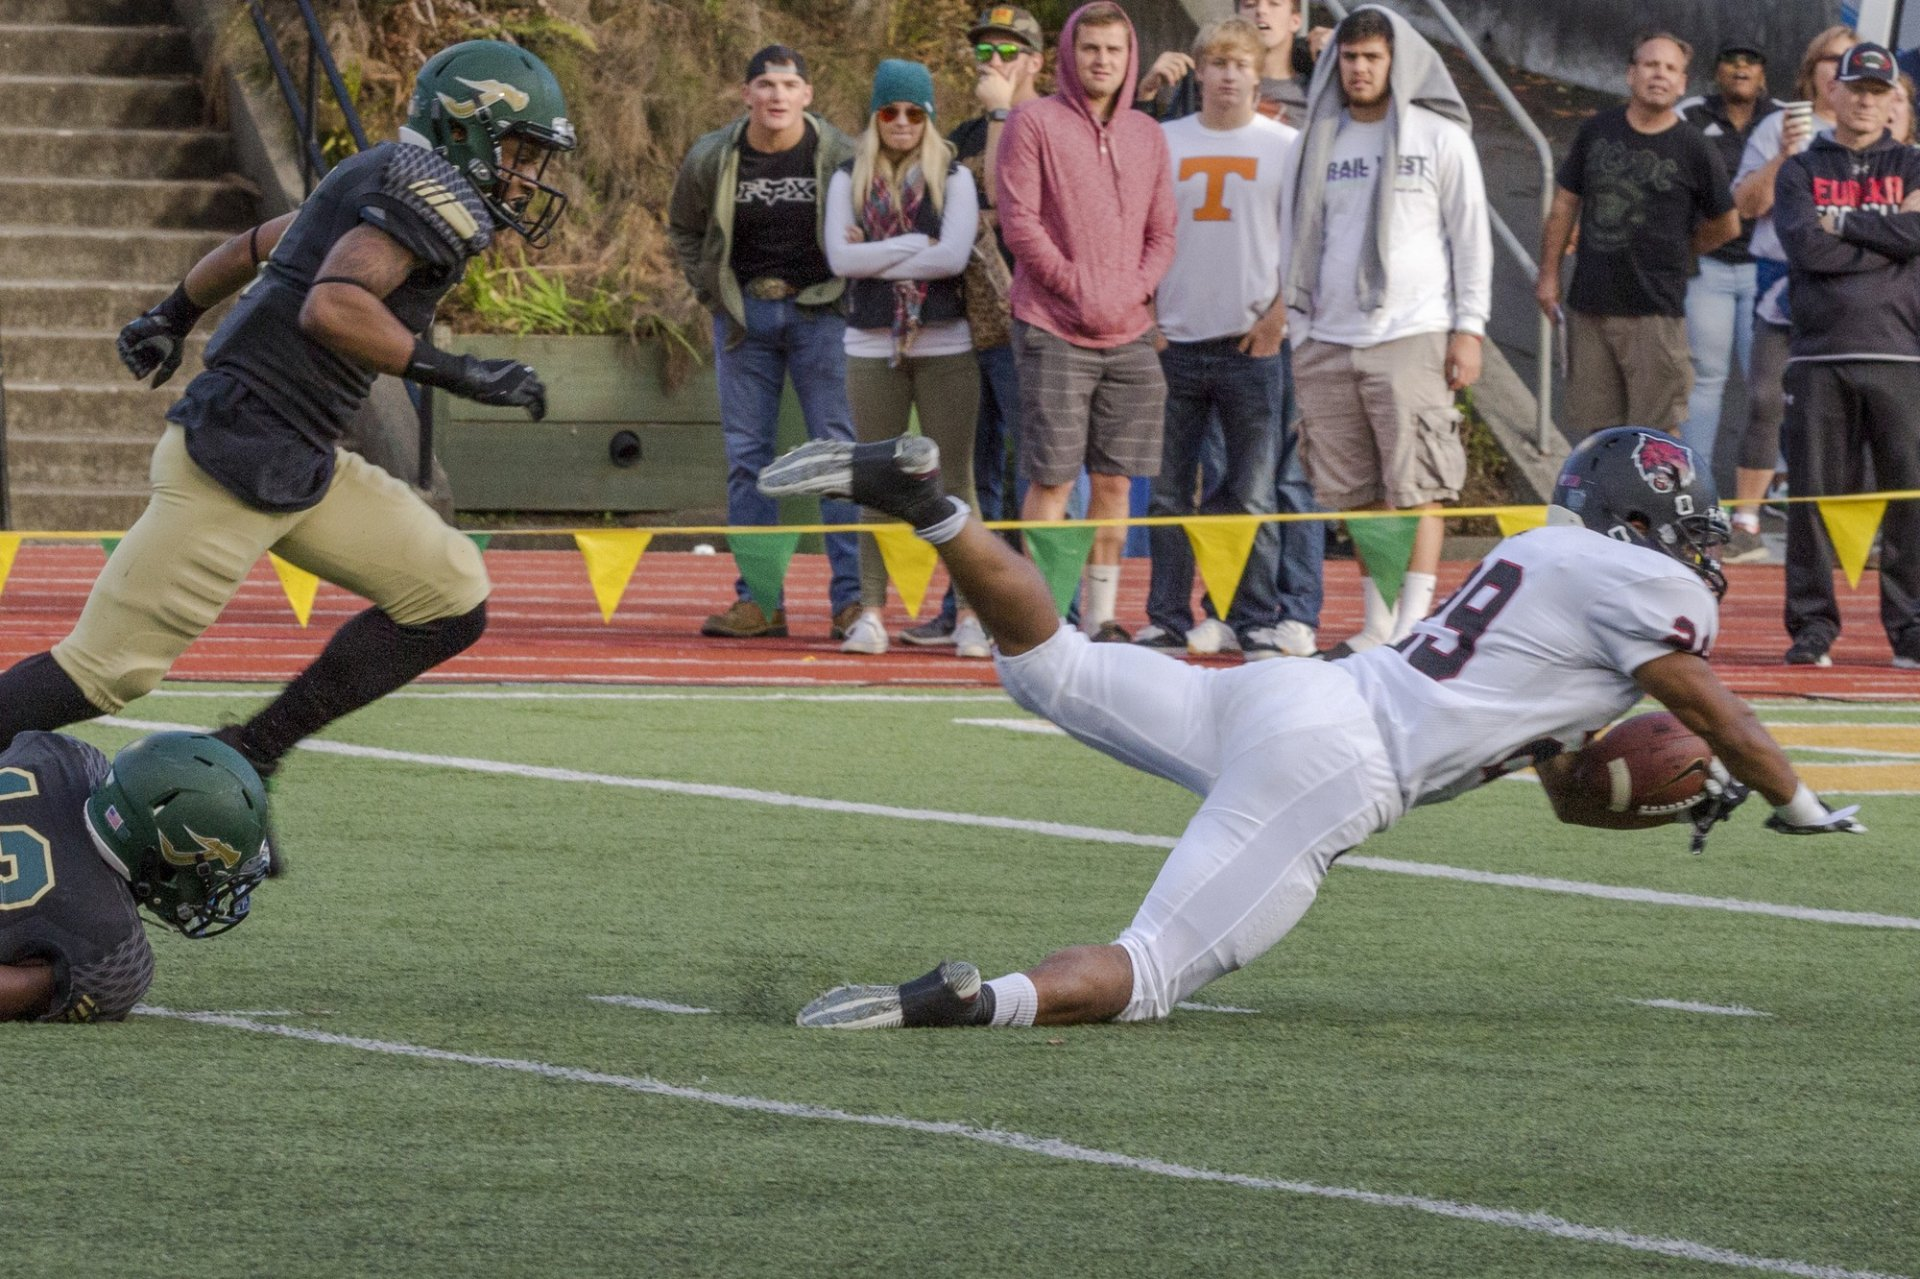 Shamir Geisinger (#29) of the wildcats dives to the end zone for a touchdown during the fourth quarter at the HSU Redwood bowl during the November 11 game. Photo credit: Ian Thompson